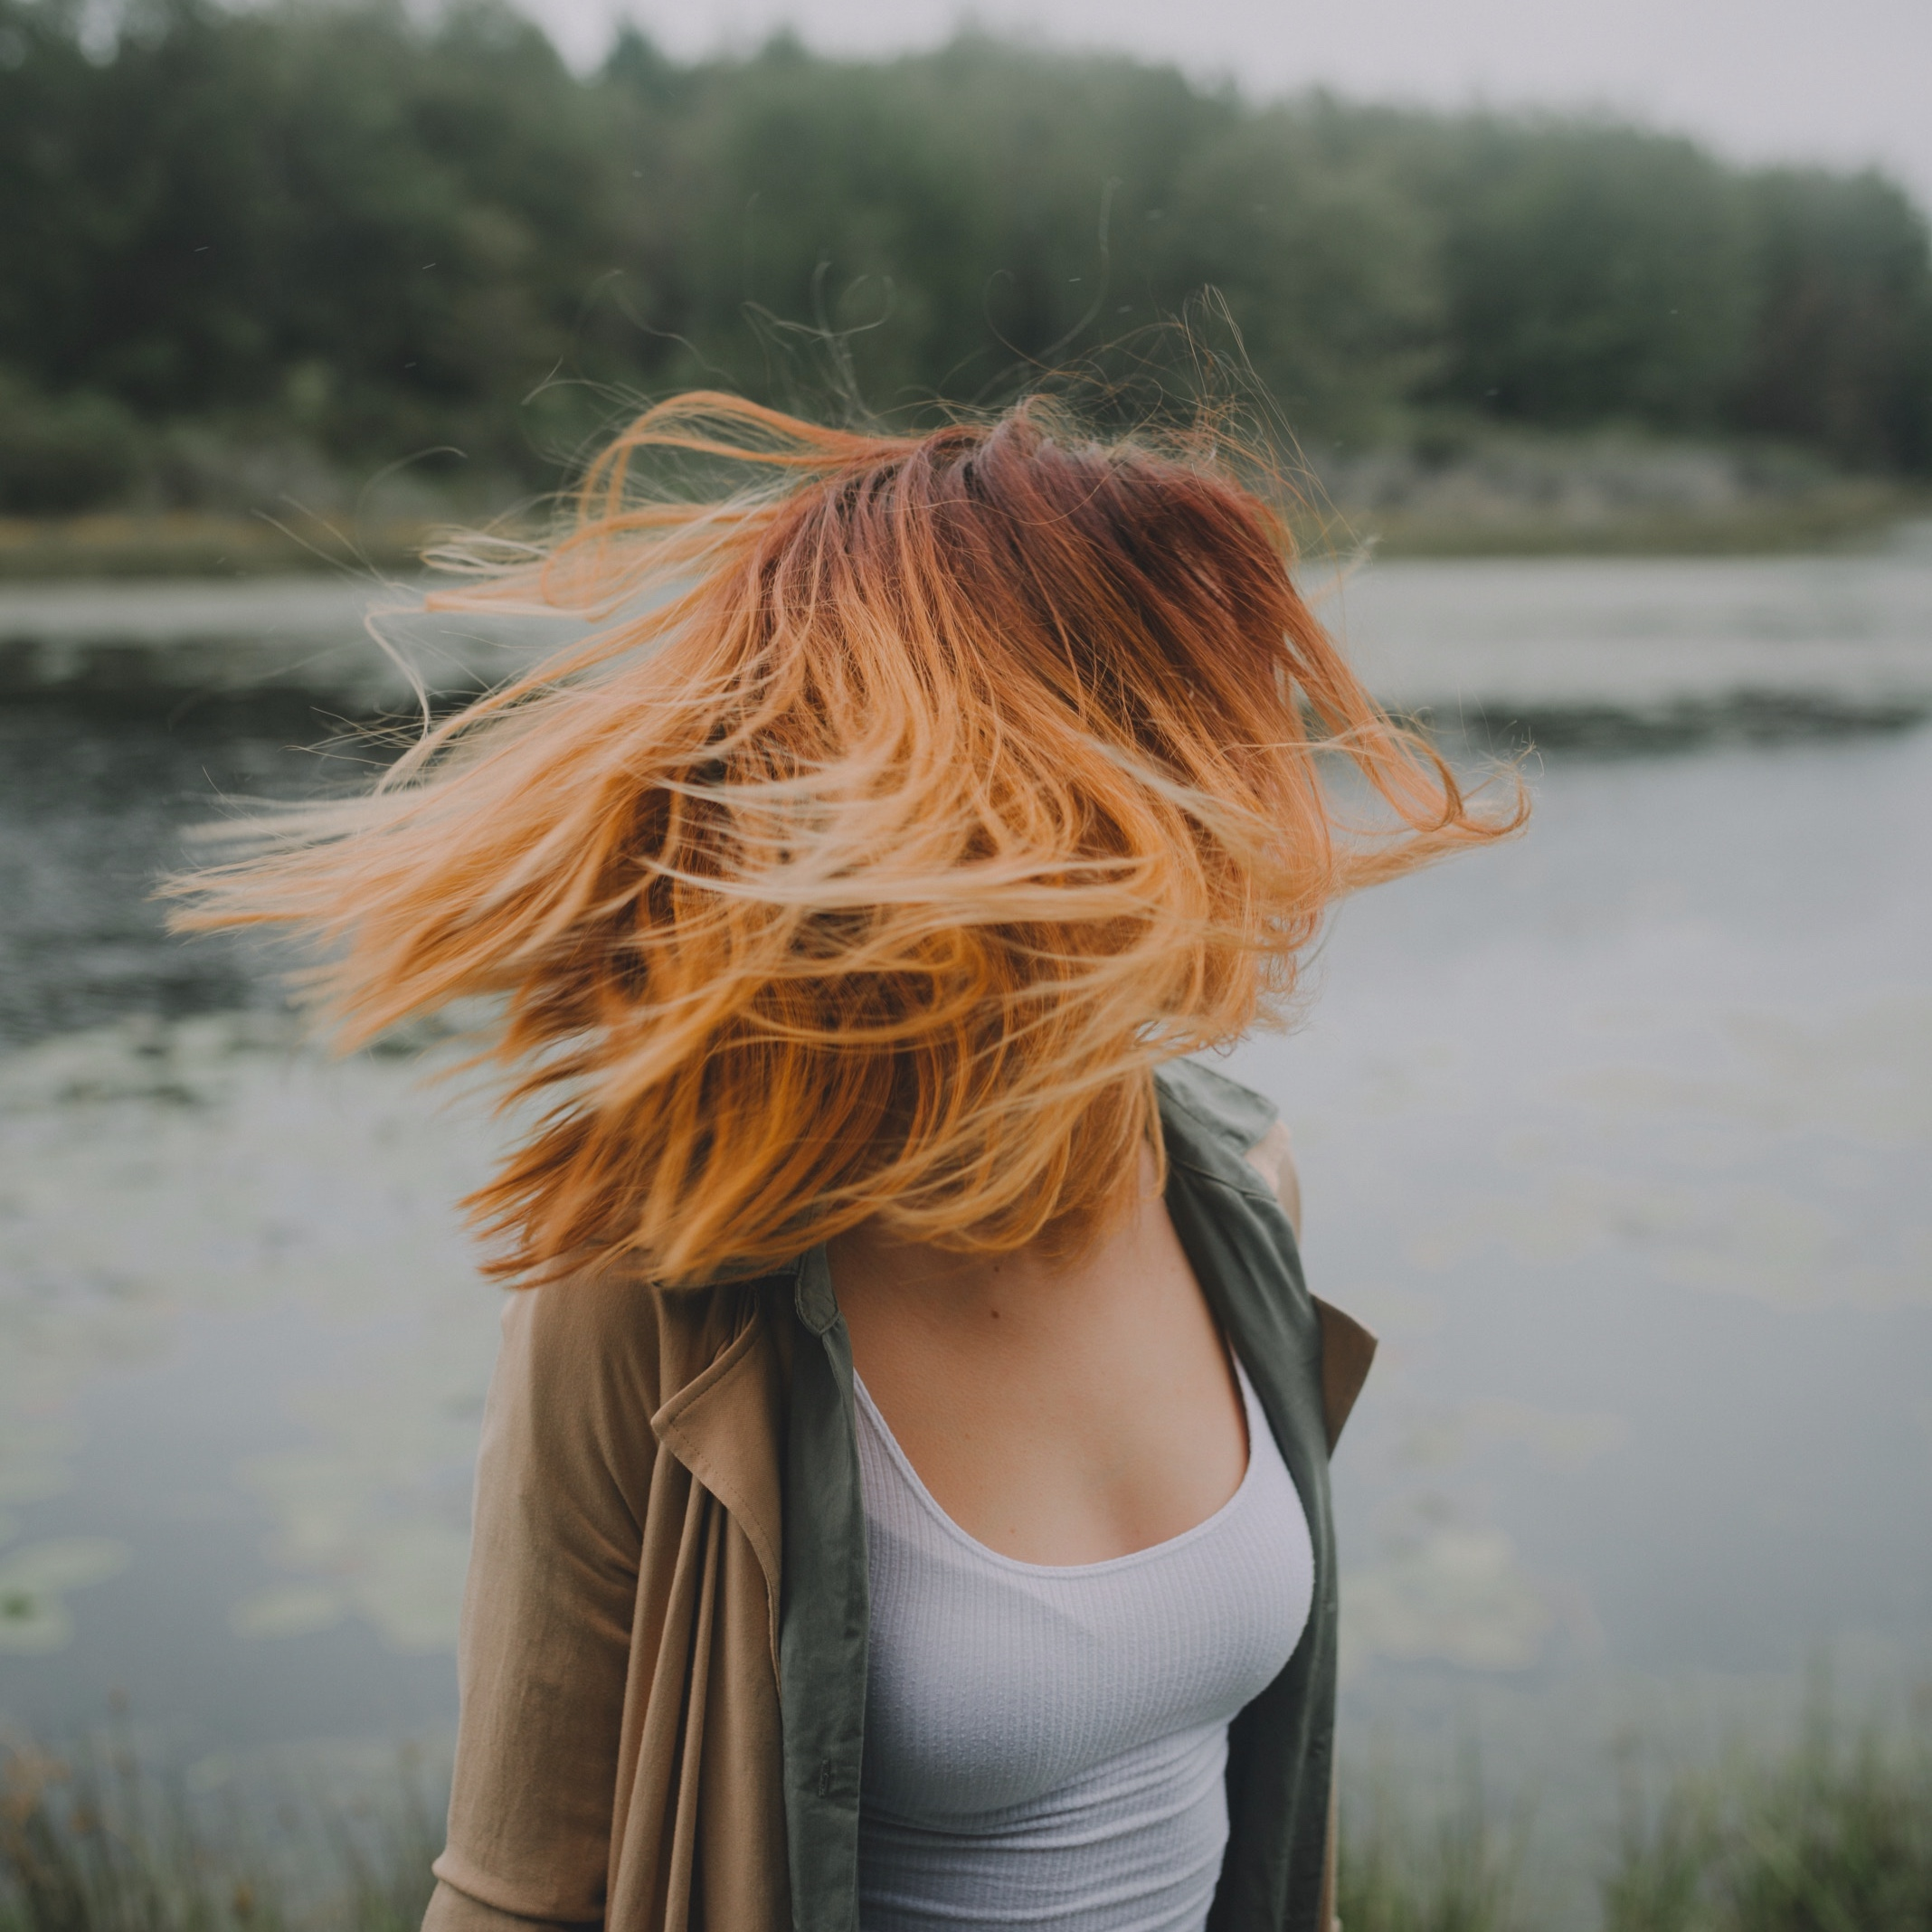 The Grunge Look - A common theme for 2019 is taking inspiration from the '90s. A time where grunge was all the rage, it isn't surprising that second and third day, messy hair is already becoming a top trend.